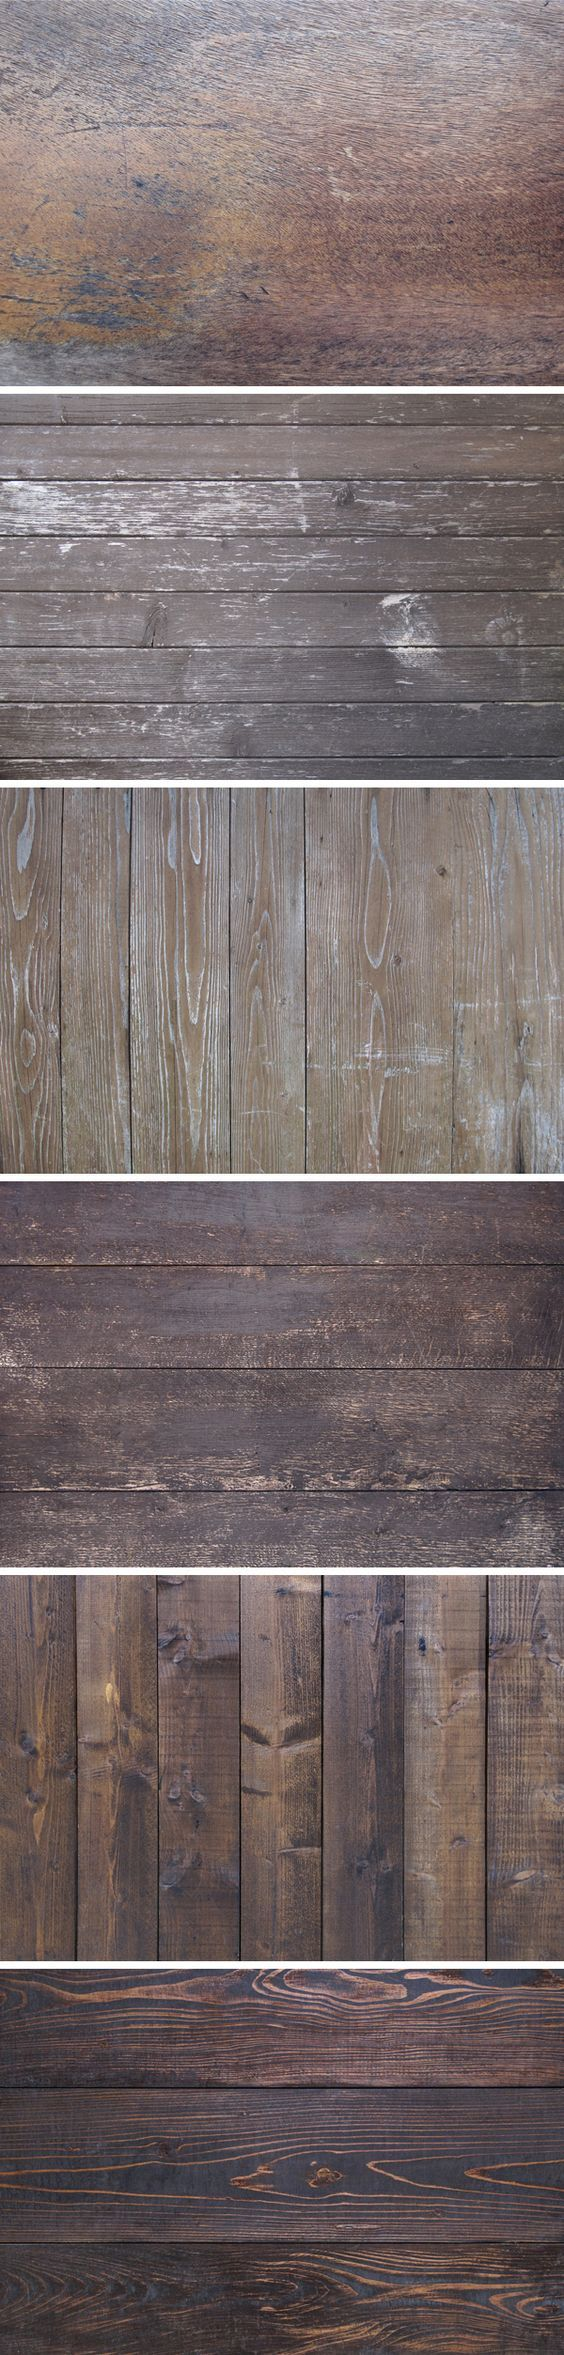 6 Vintage Wood Textures » GraphicBurger: